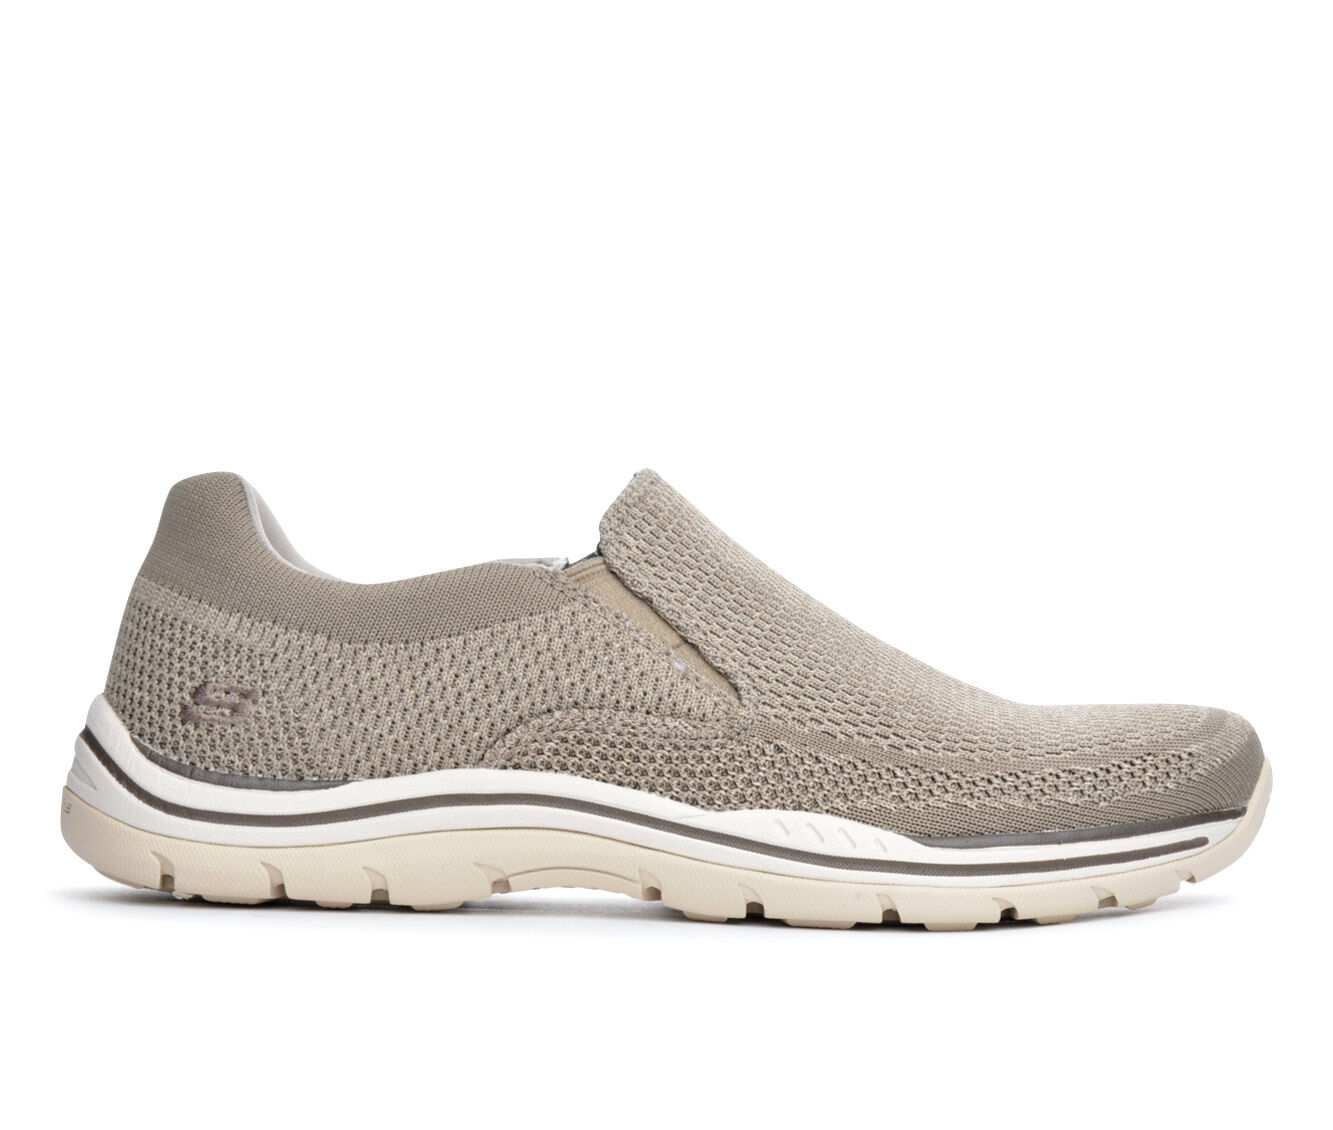 Men's Skechers Gomel 65086 Casual Shoes Taupe